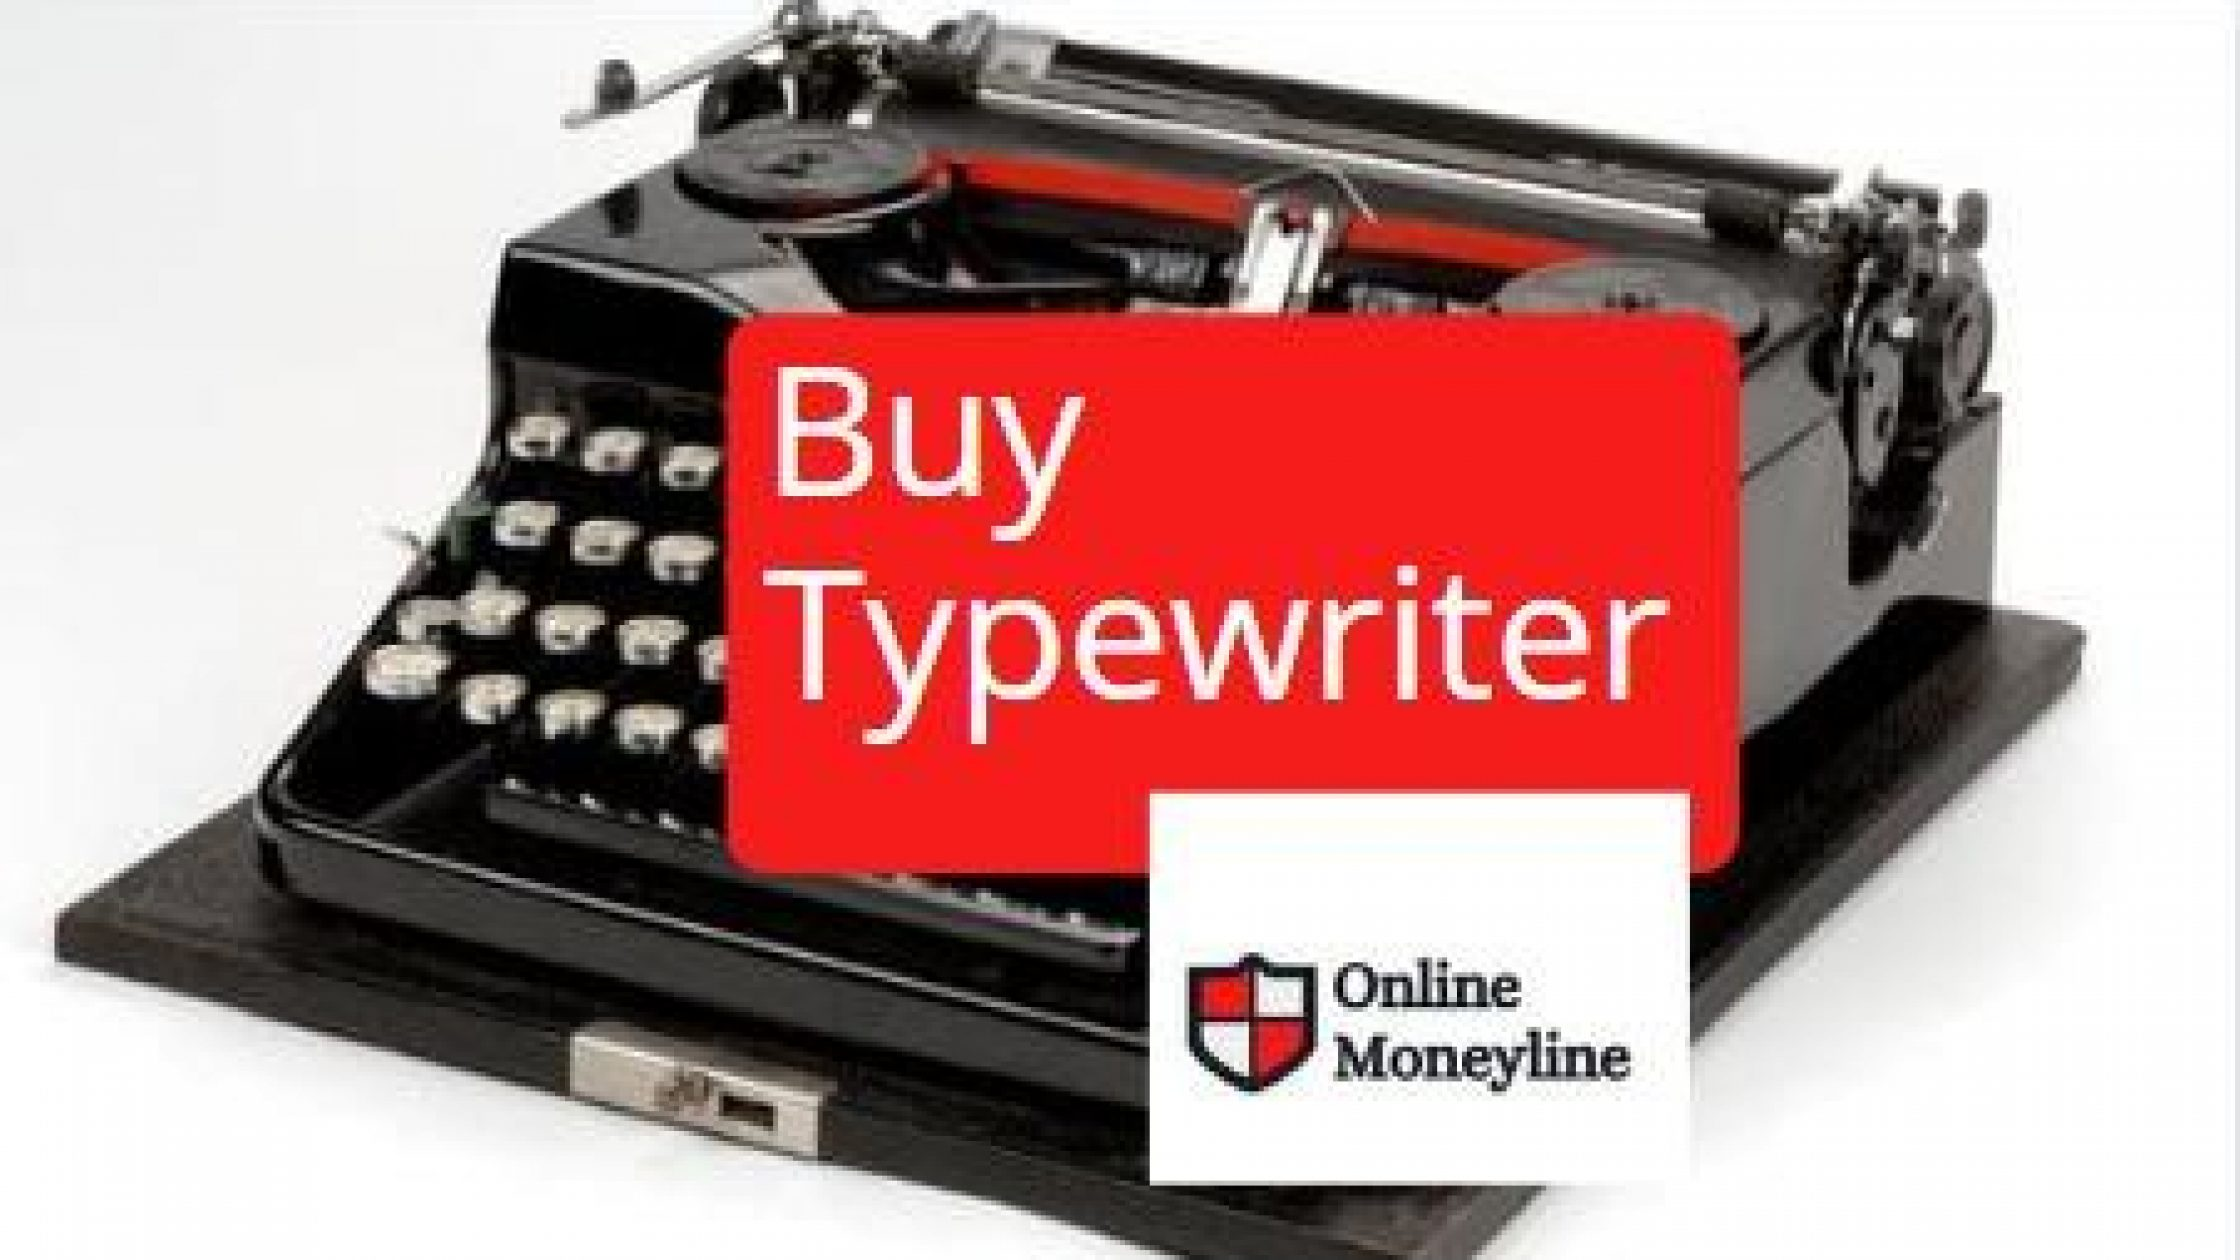 Buy Typewriter: 12 Things You Need To Know Before Buying